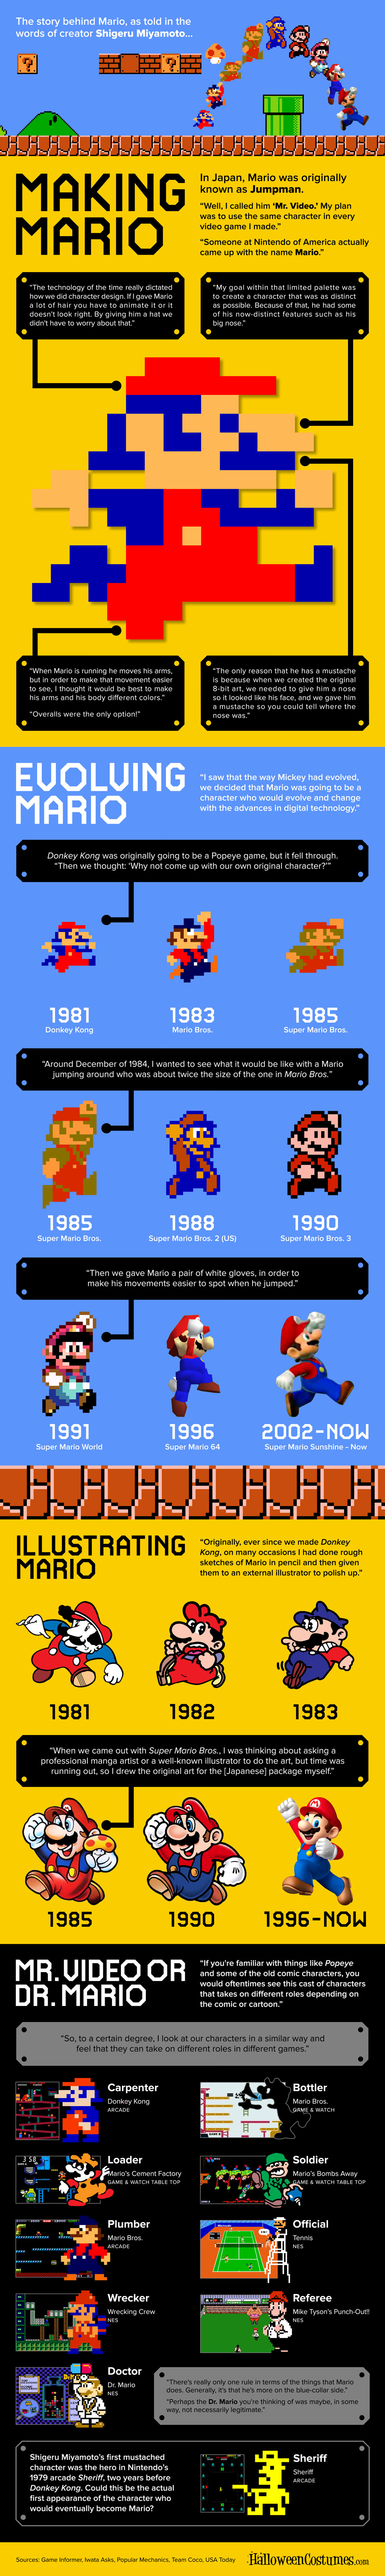 Making Mario: The Creation and Evolution of Mario